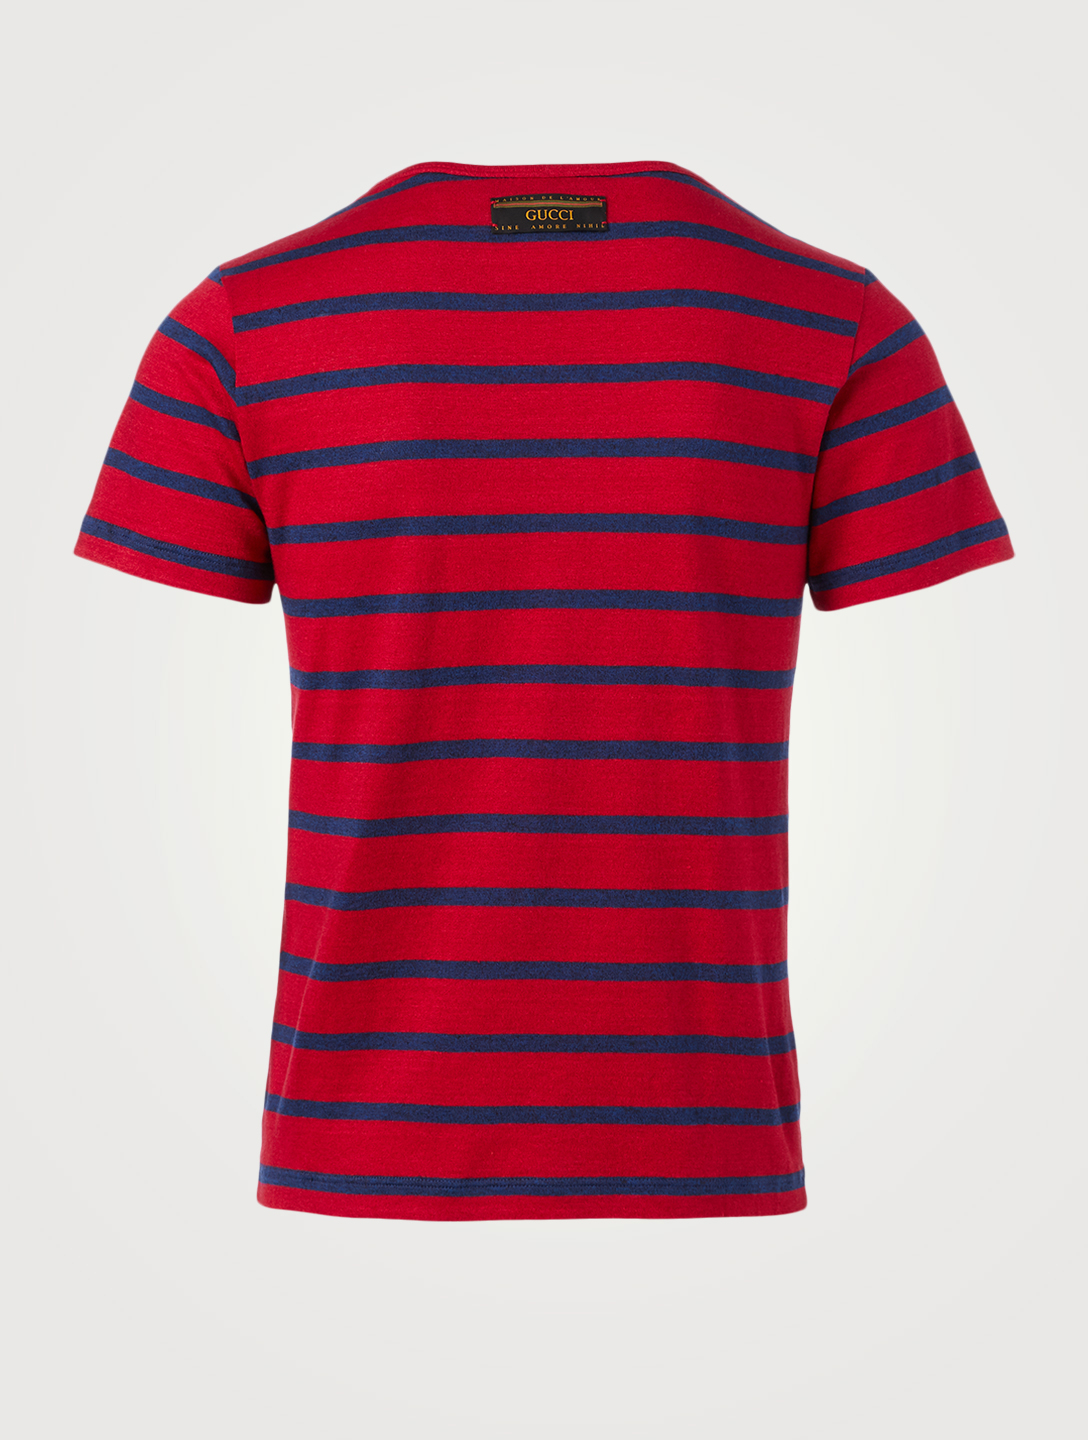 GUCCI DISNEY Linen T-Shirt In Striped Print Men's Red